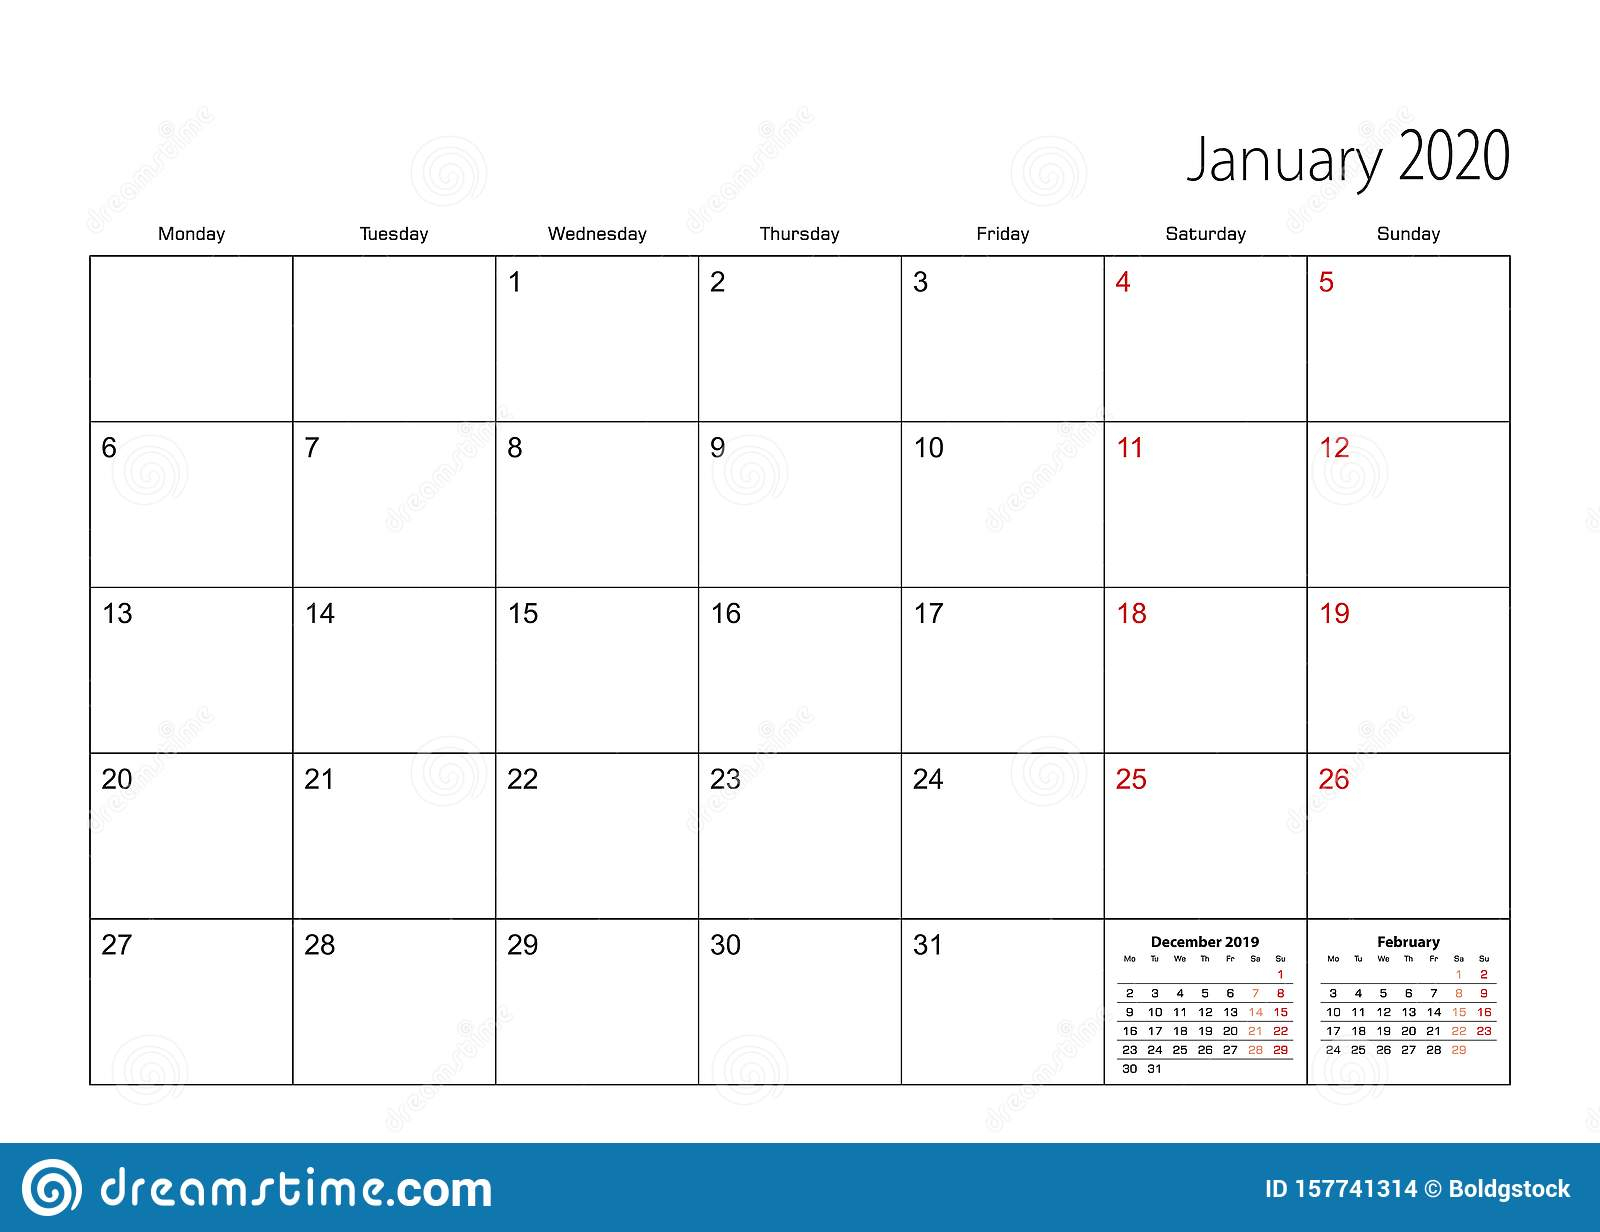 January 2020 Simple Calendar Planner, Week Starts From intended for January 2020 Calendar Starting Monday